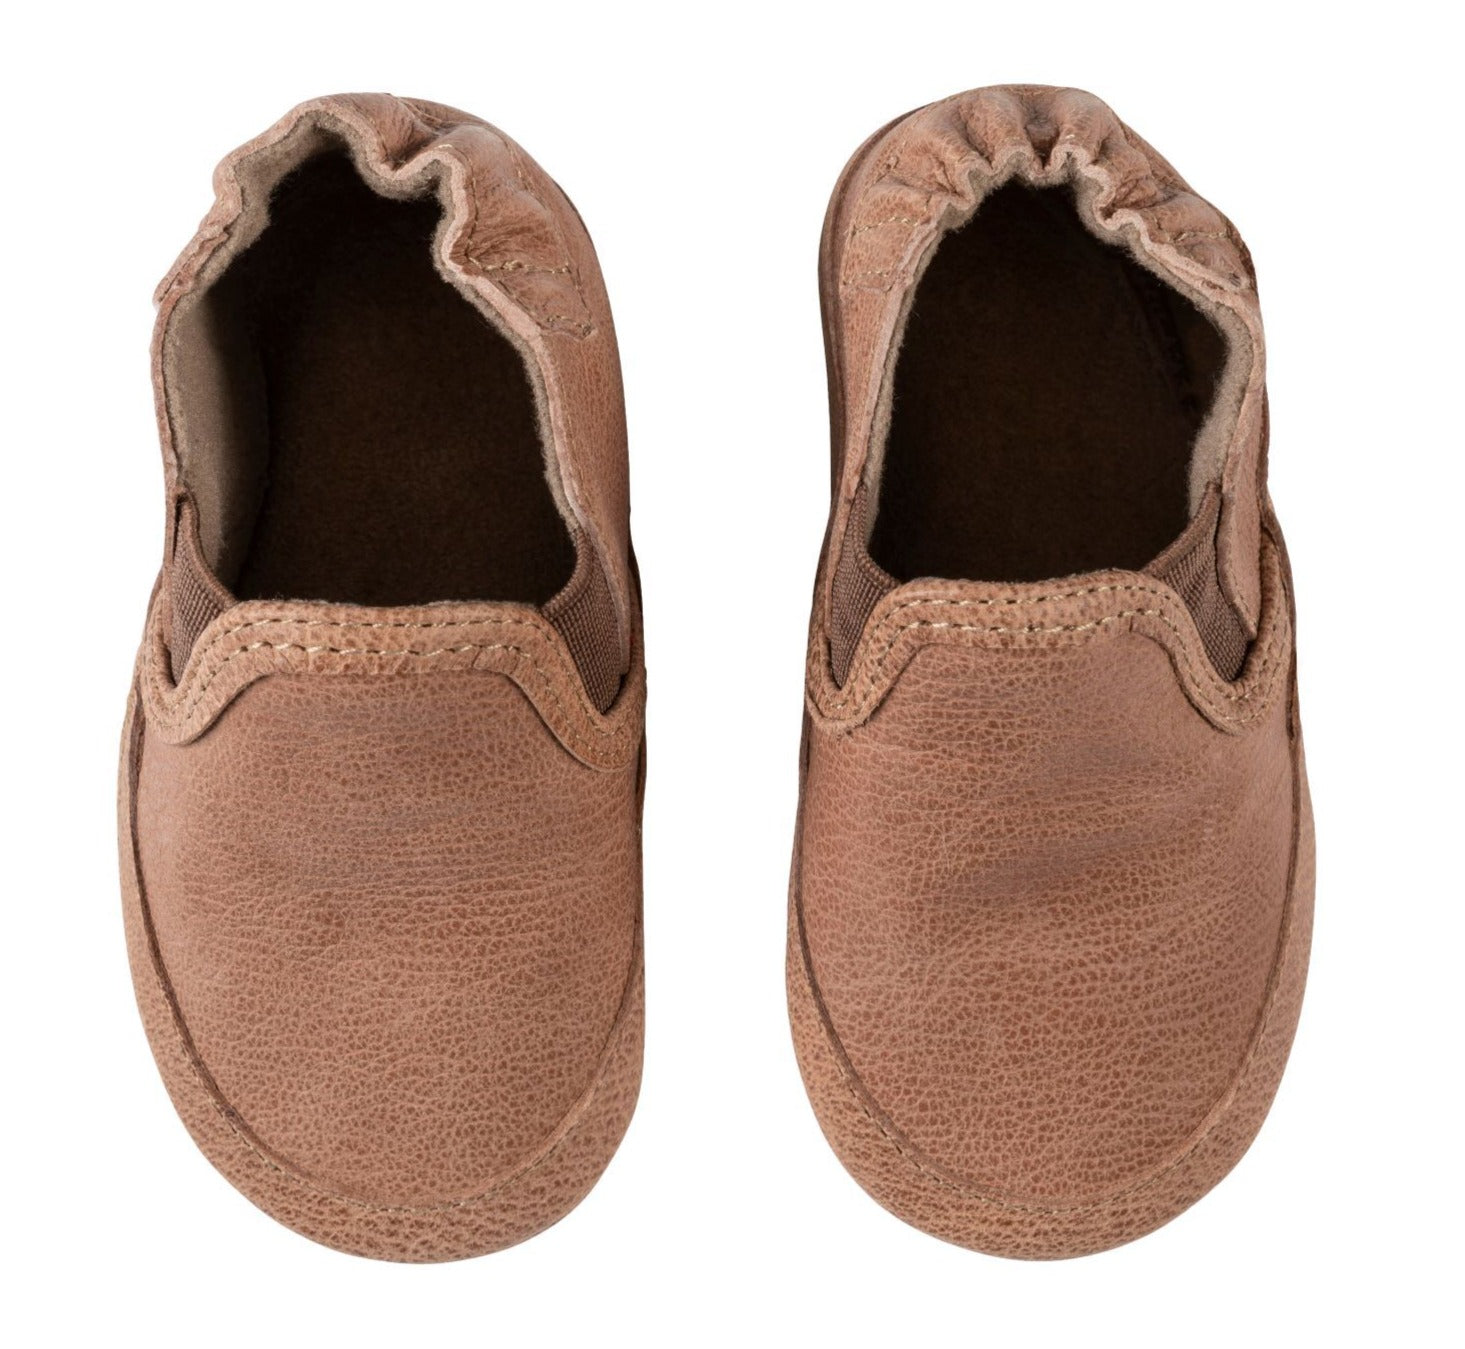 Robeez boys soft sole shoe- Liam Camel